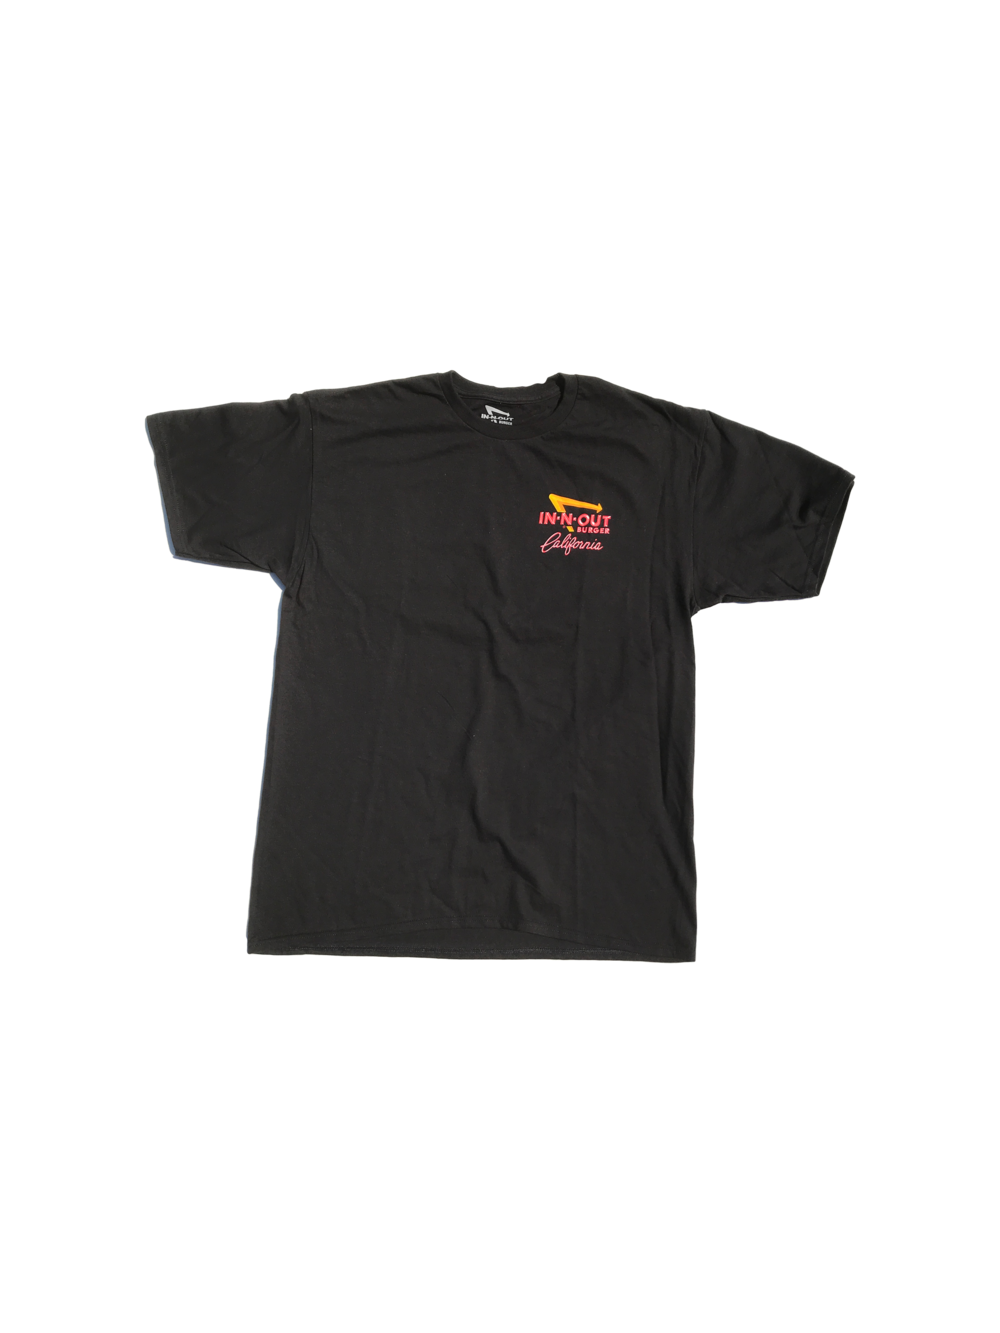 In N Out Burger Tee - L — The Vintage Jawn